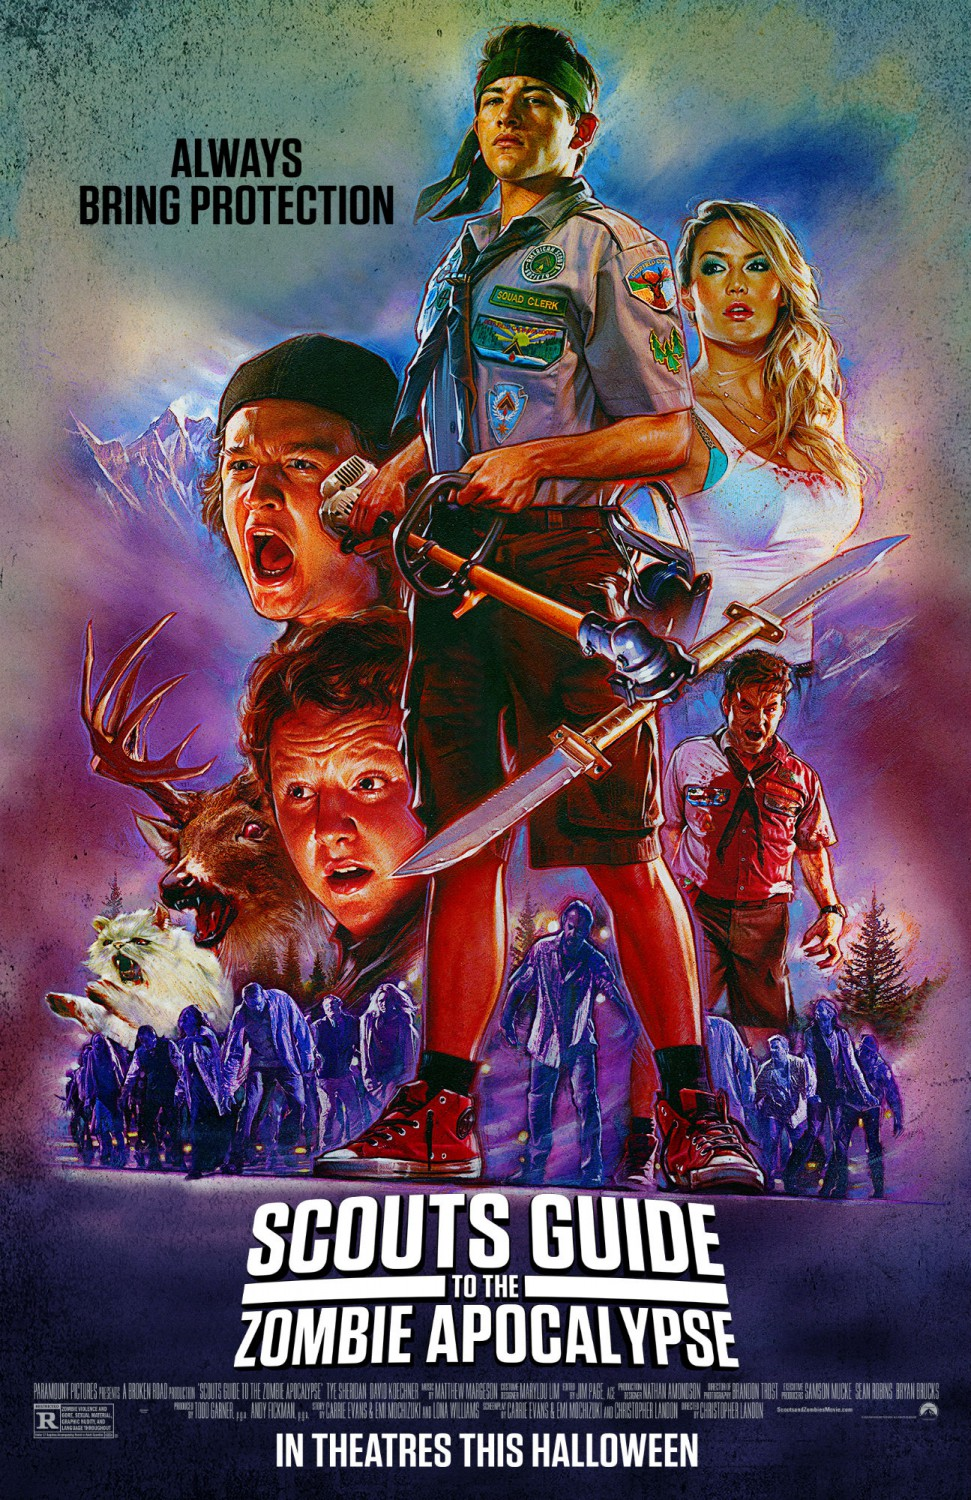 scouts_guide_to_the_zombie_apocalypse_ver3_xlg.jpg